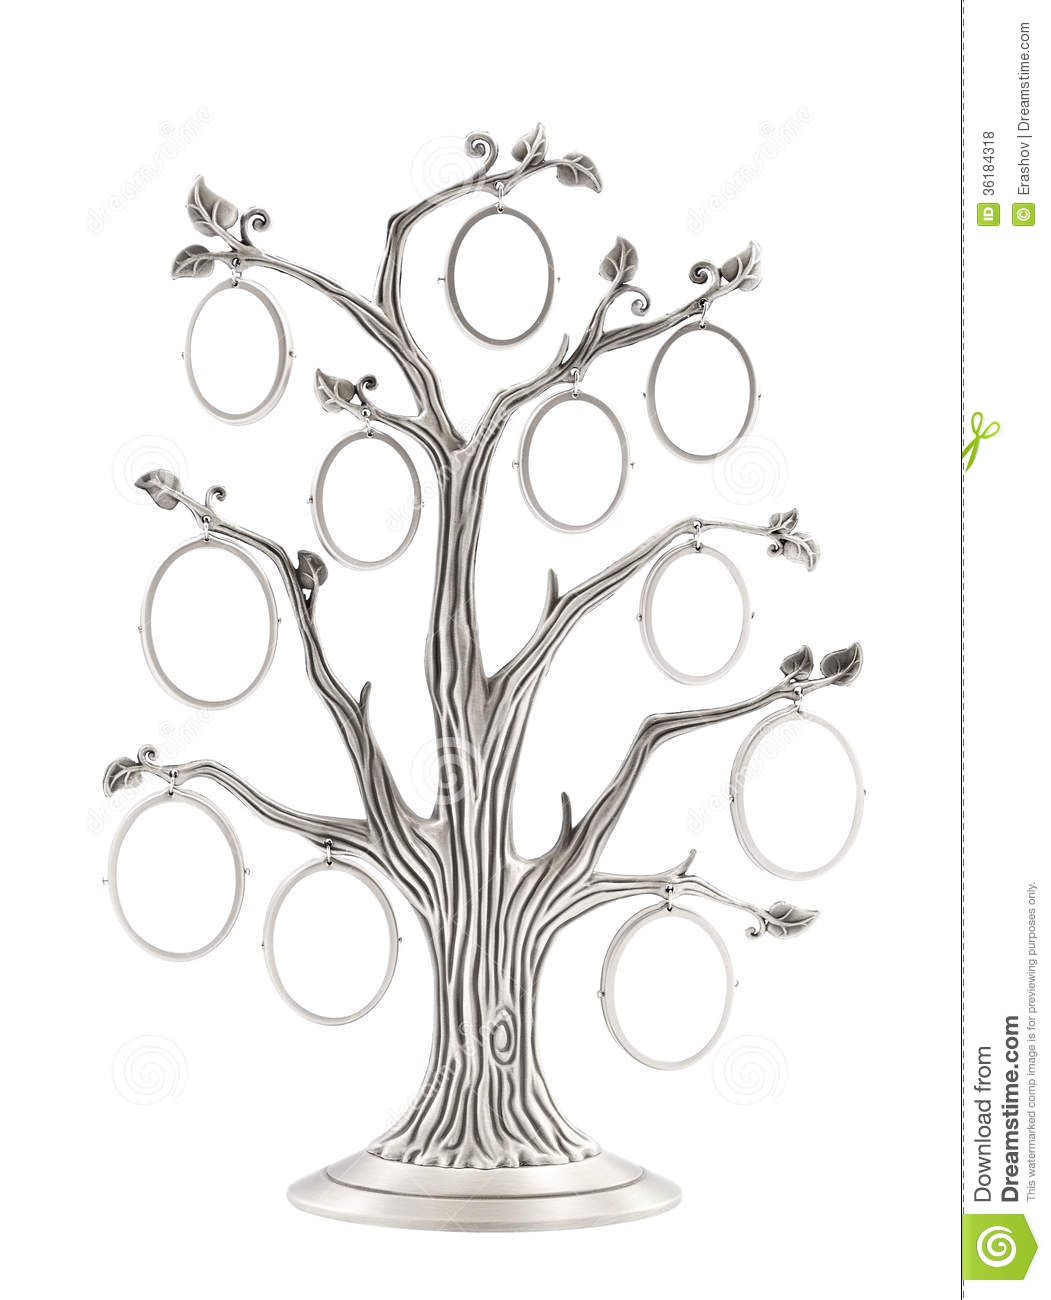 Silver Genealogical Family Tree Stock Photo - Image of empty ...